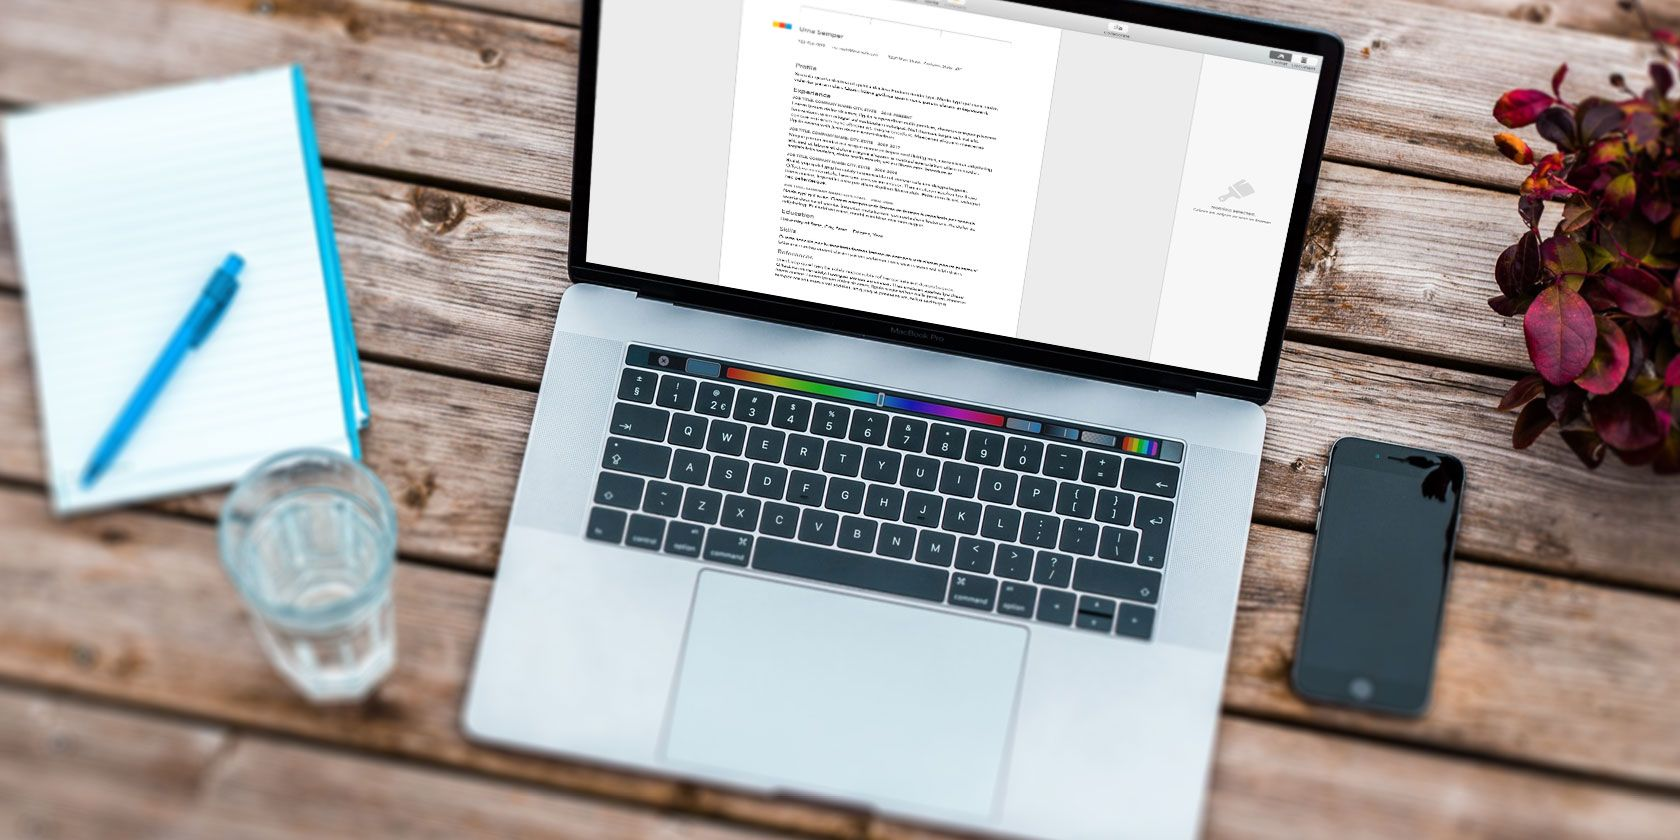 How to upload your resume to linkedin the right way